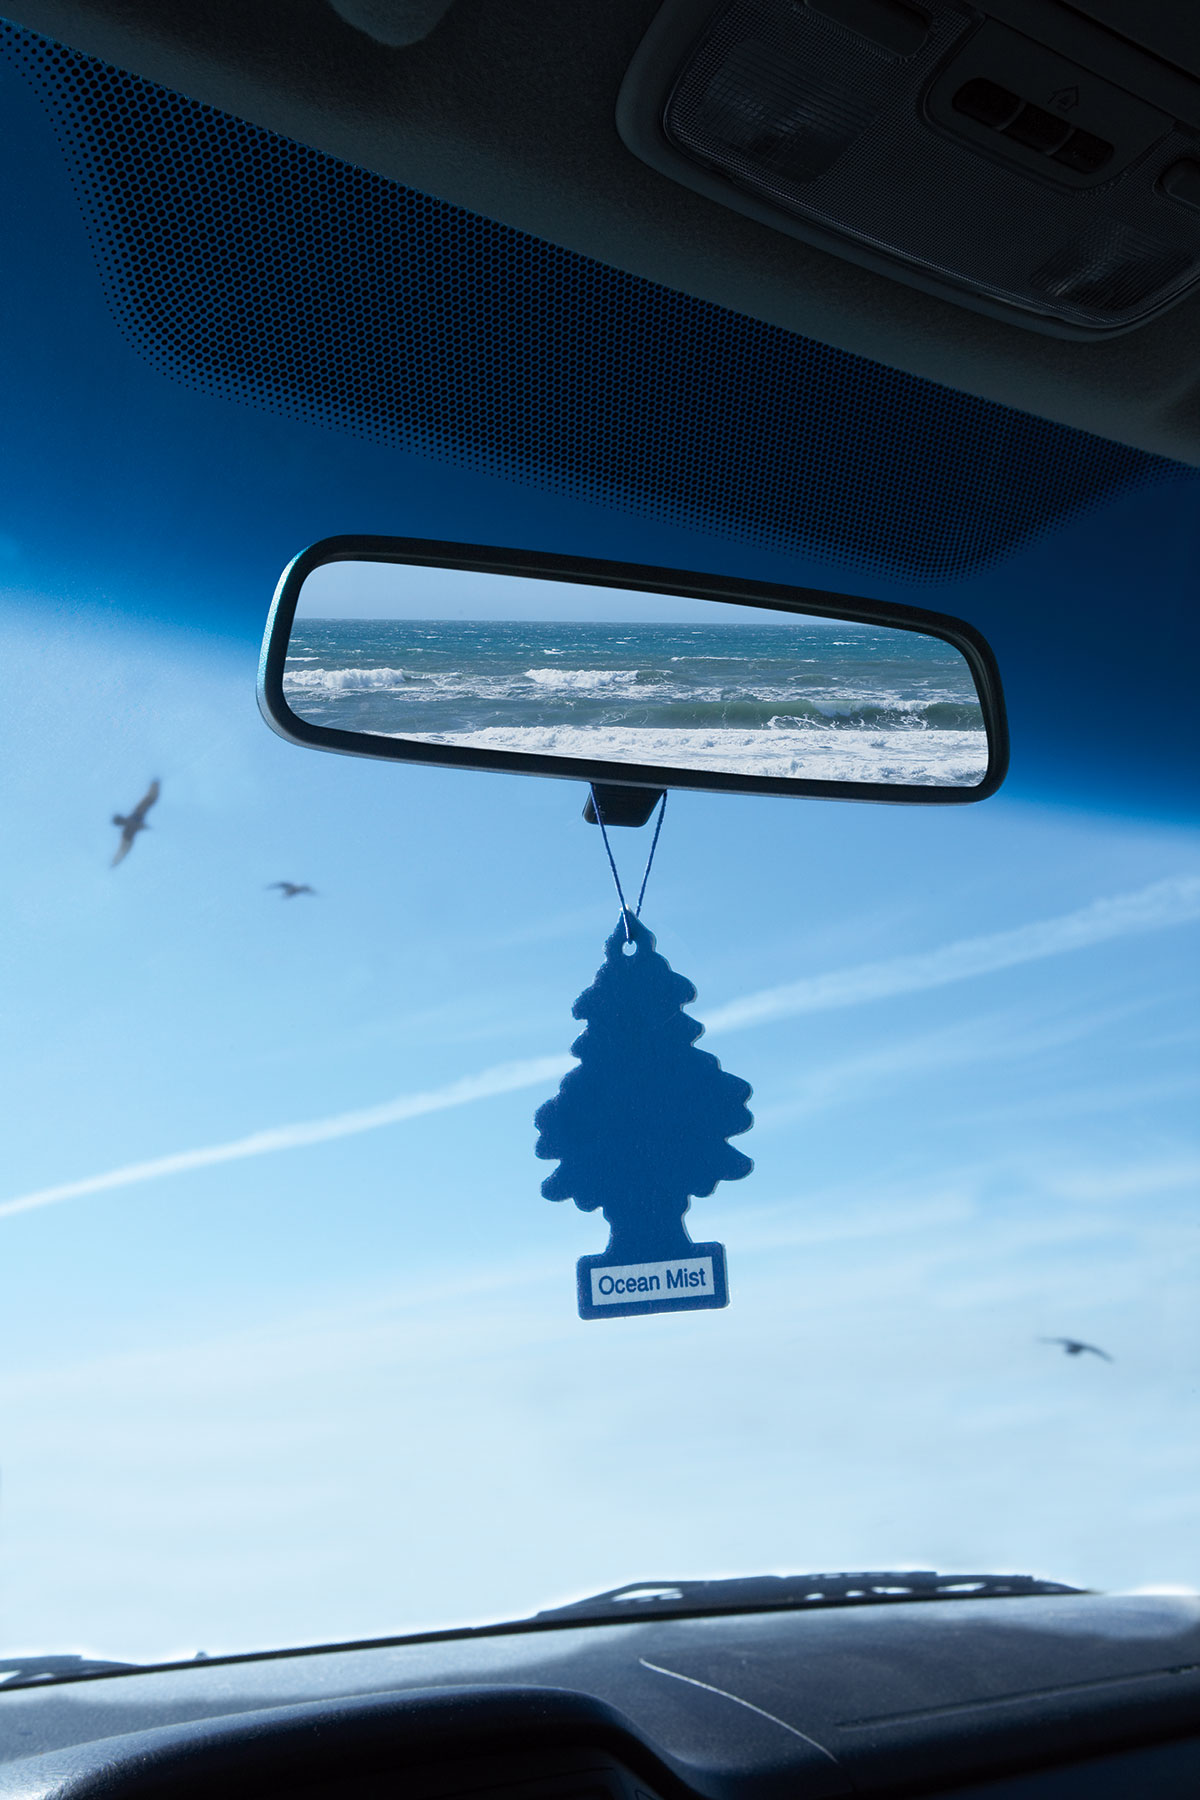 Air freshener hanging from a rear view mirror